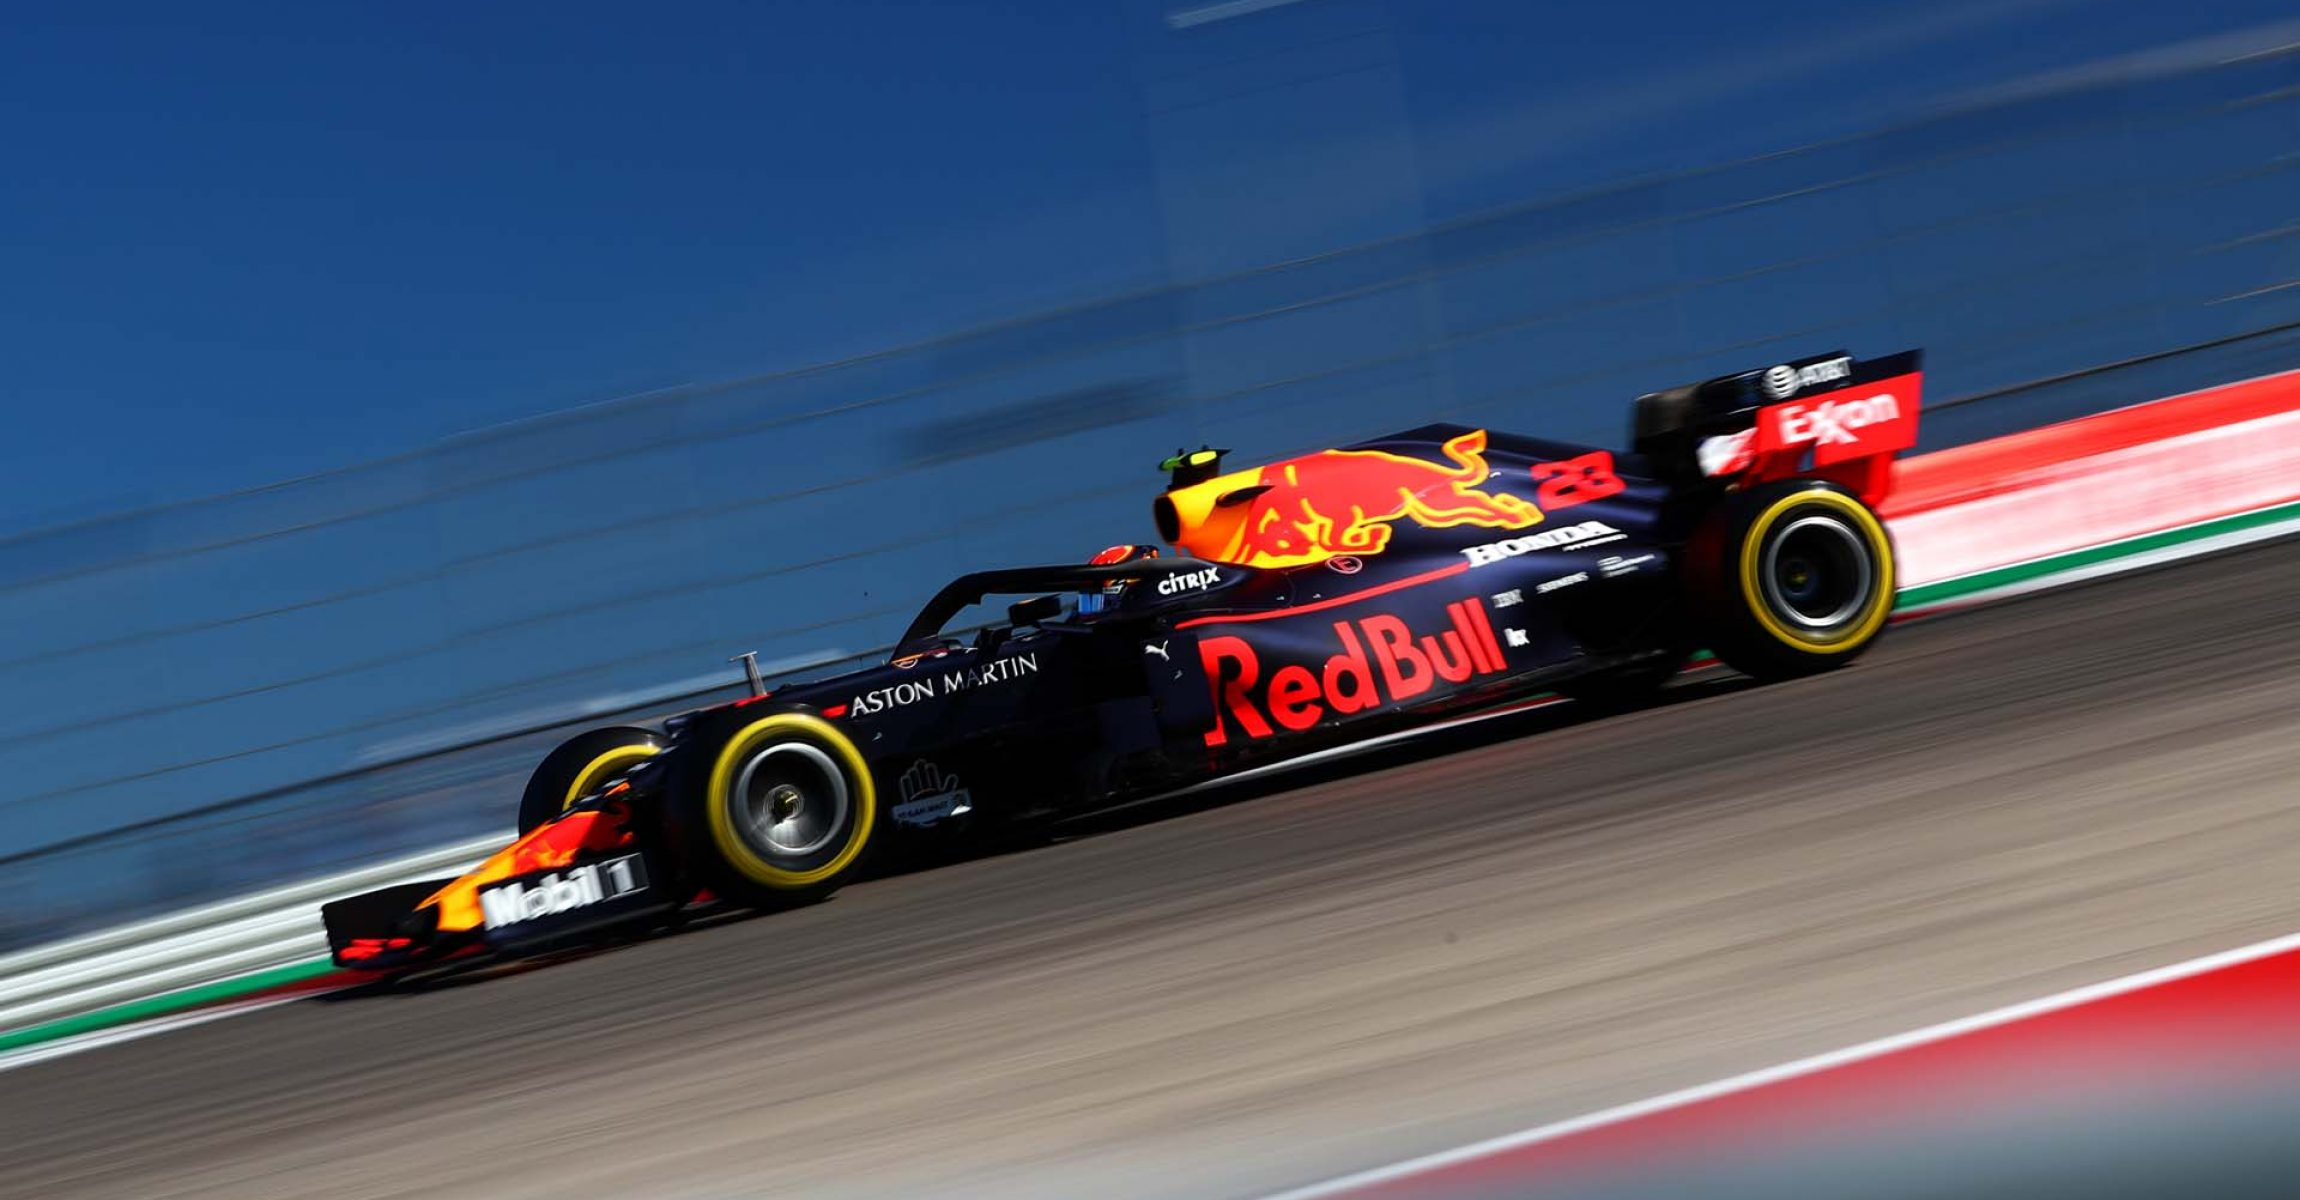 AUSTIN, TEXAS - NOVEMBER 03: Alexander Albon of Thailand driving the (23) Aston Martin Red Bull Racing RB15 on track during the F1 Grand Prix of USA at Circuit of The Americas on November 03, 2019 in Austin, Texas. (Photo by Dan Istitene/Getty Images) // Getty Images / Red Bull Content Pool // AP-222Y7MM6H2111 // Usage for editorial use only //